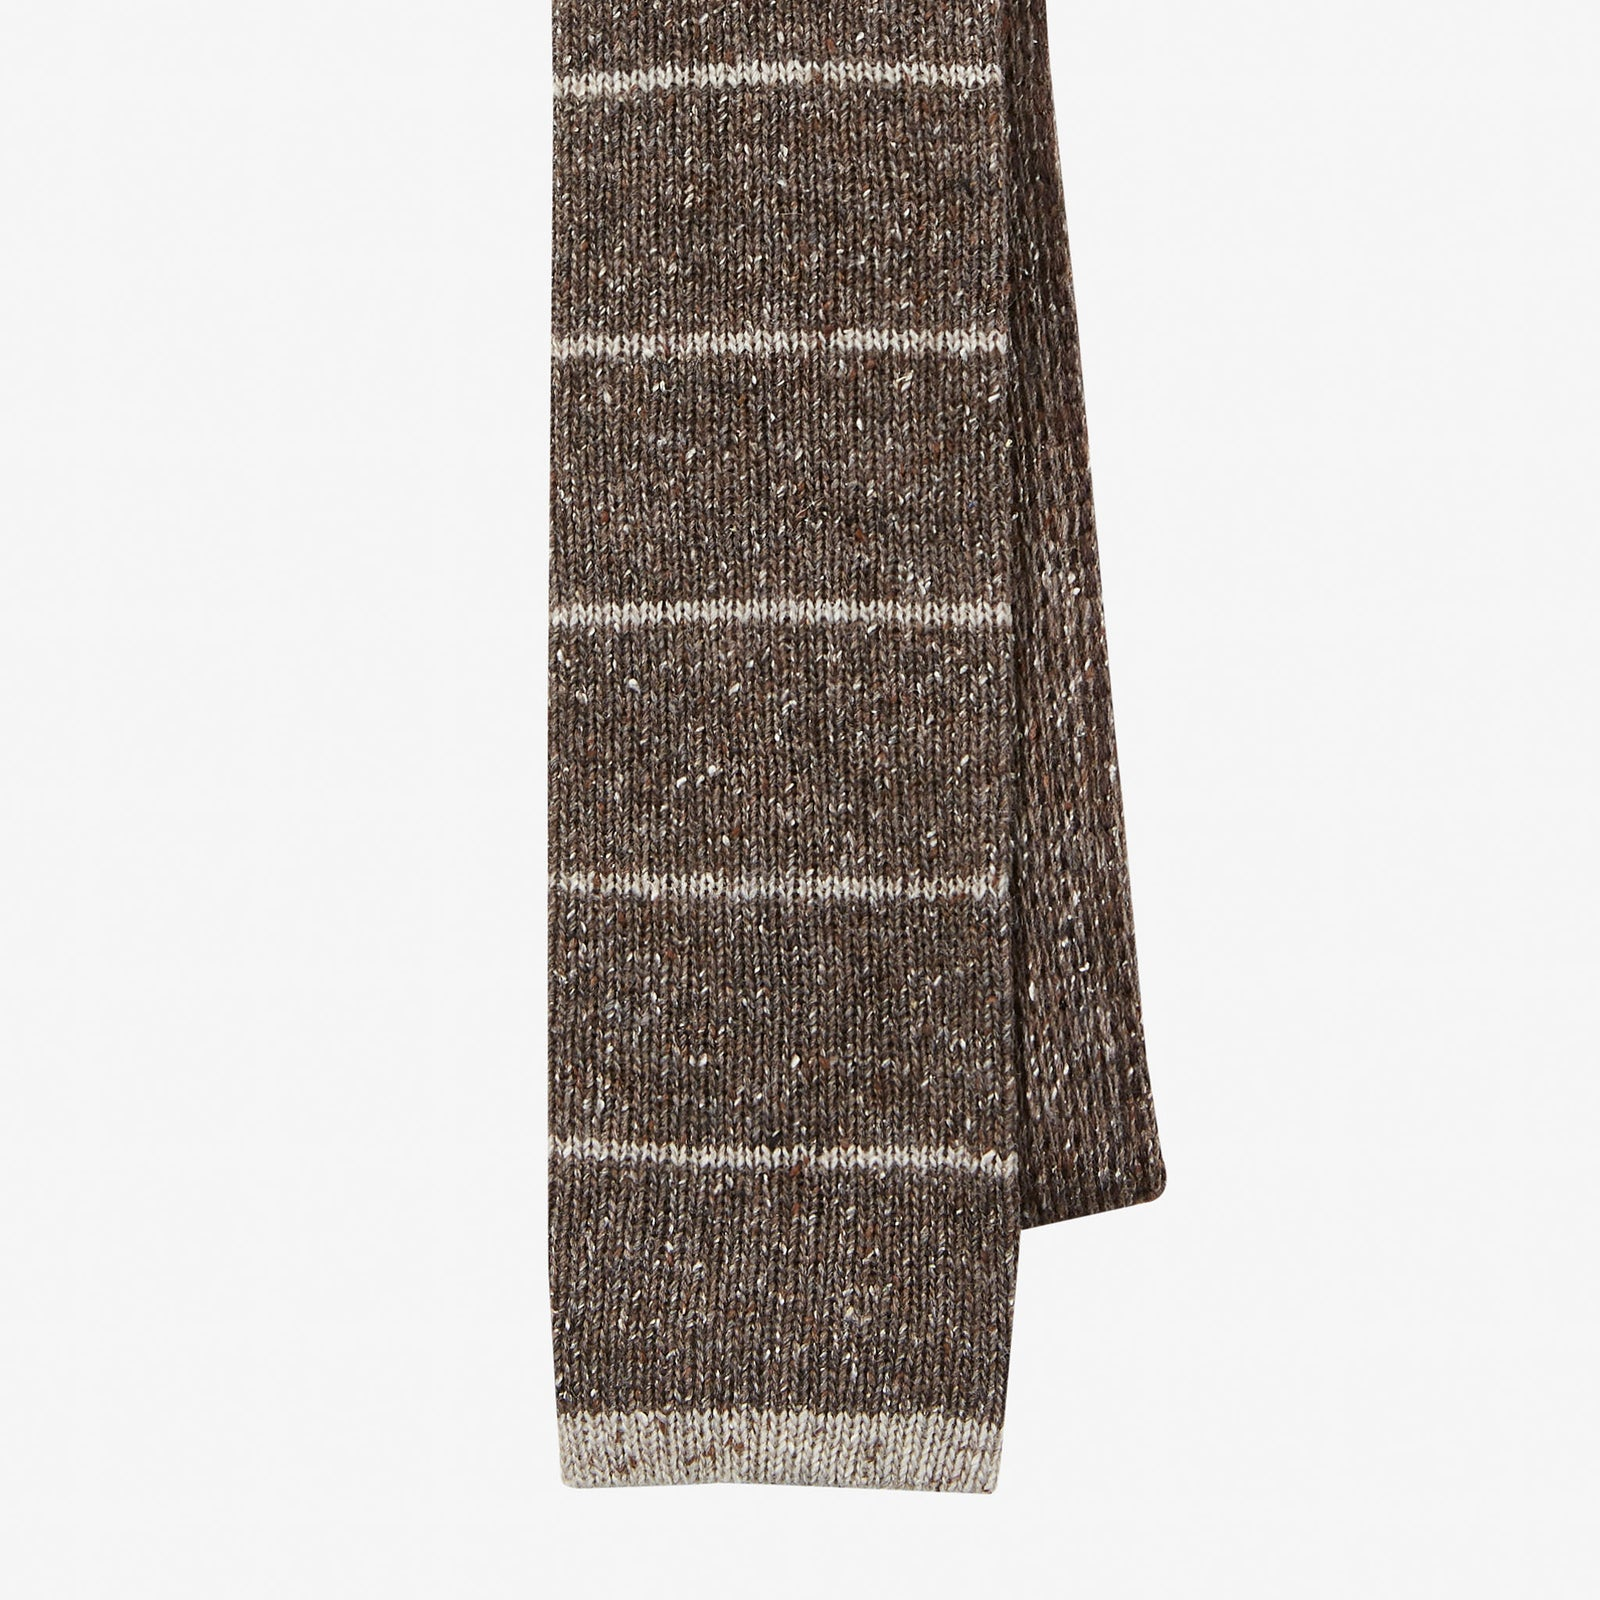 Knit Tie Wool Donegal Horizontal Stripe Brown Oatmeal